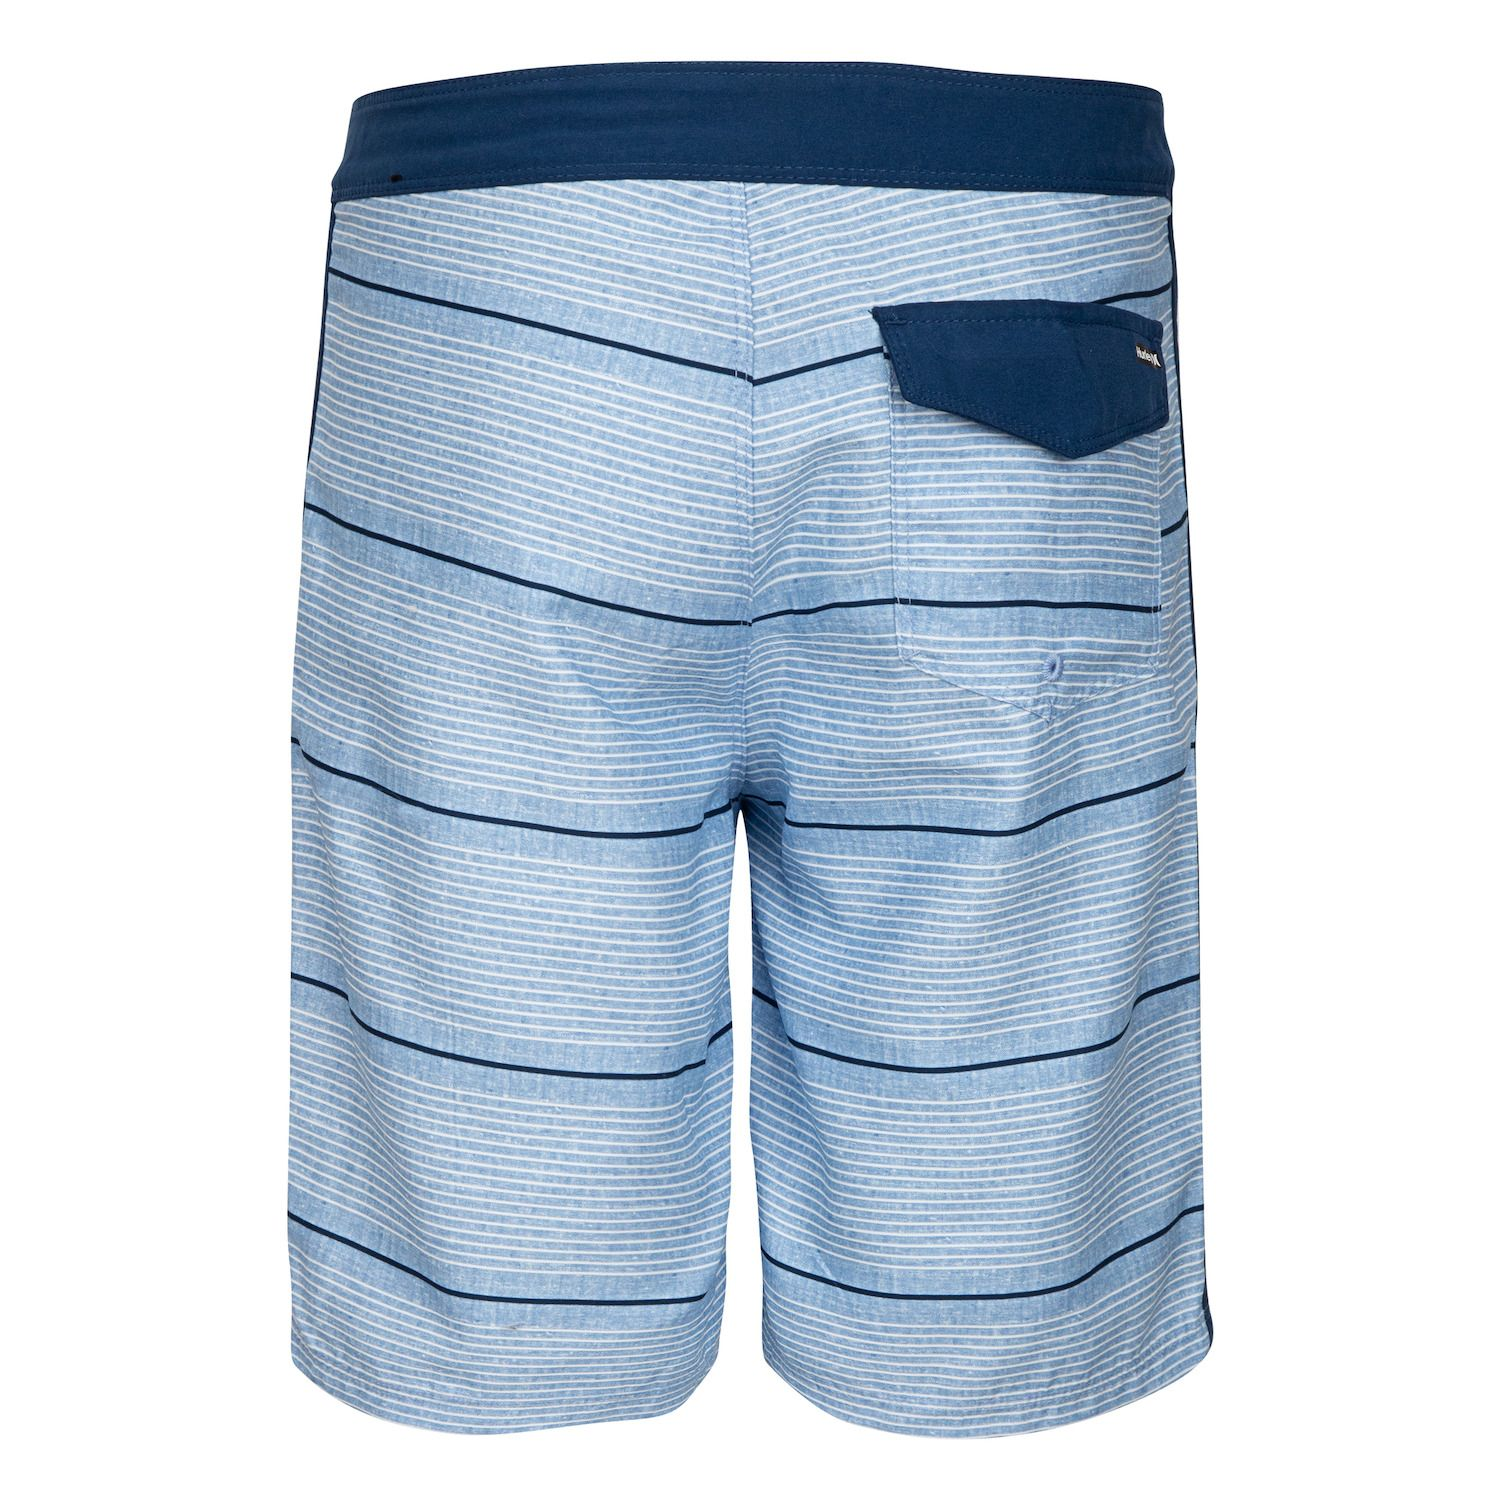 30d10bf1b5 Boys Hurley Kids Swimsuits, Clothing | Kohl's